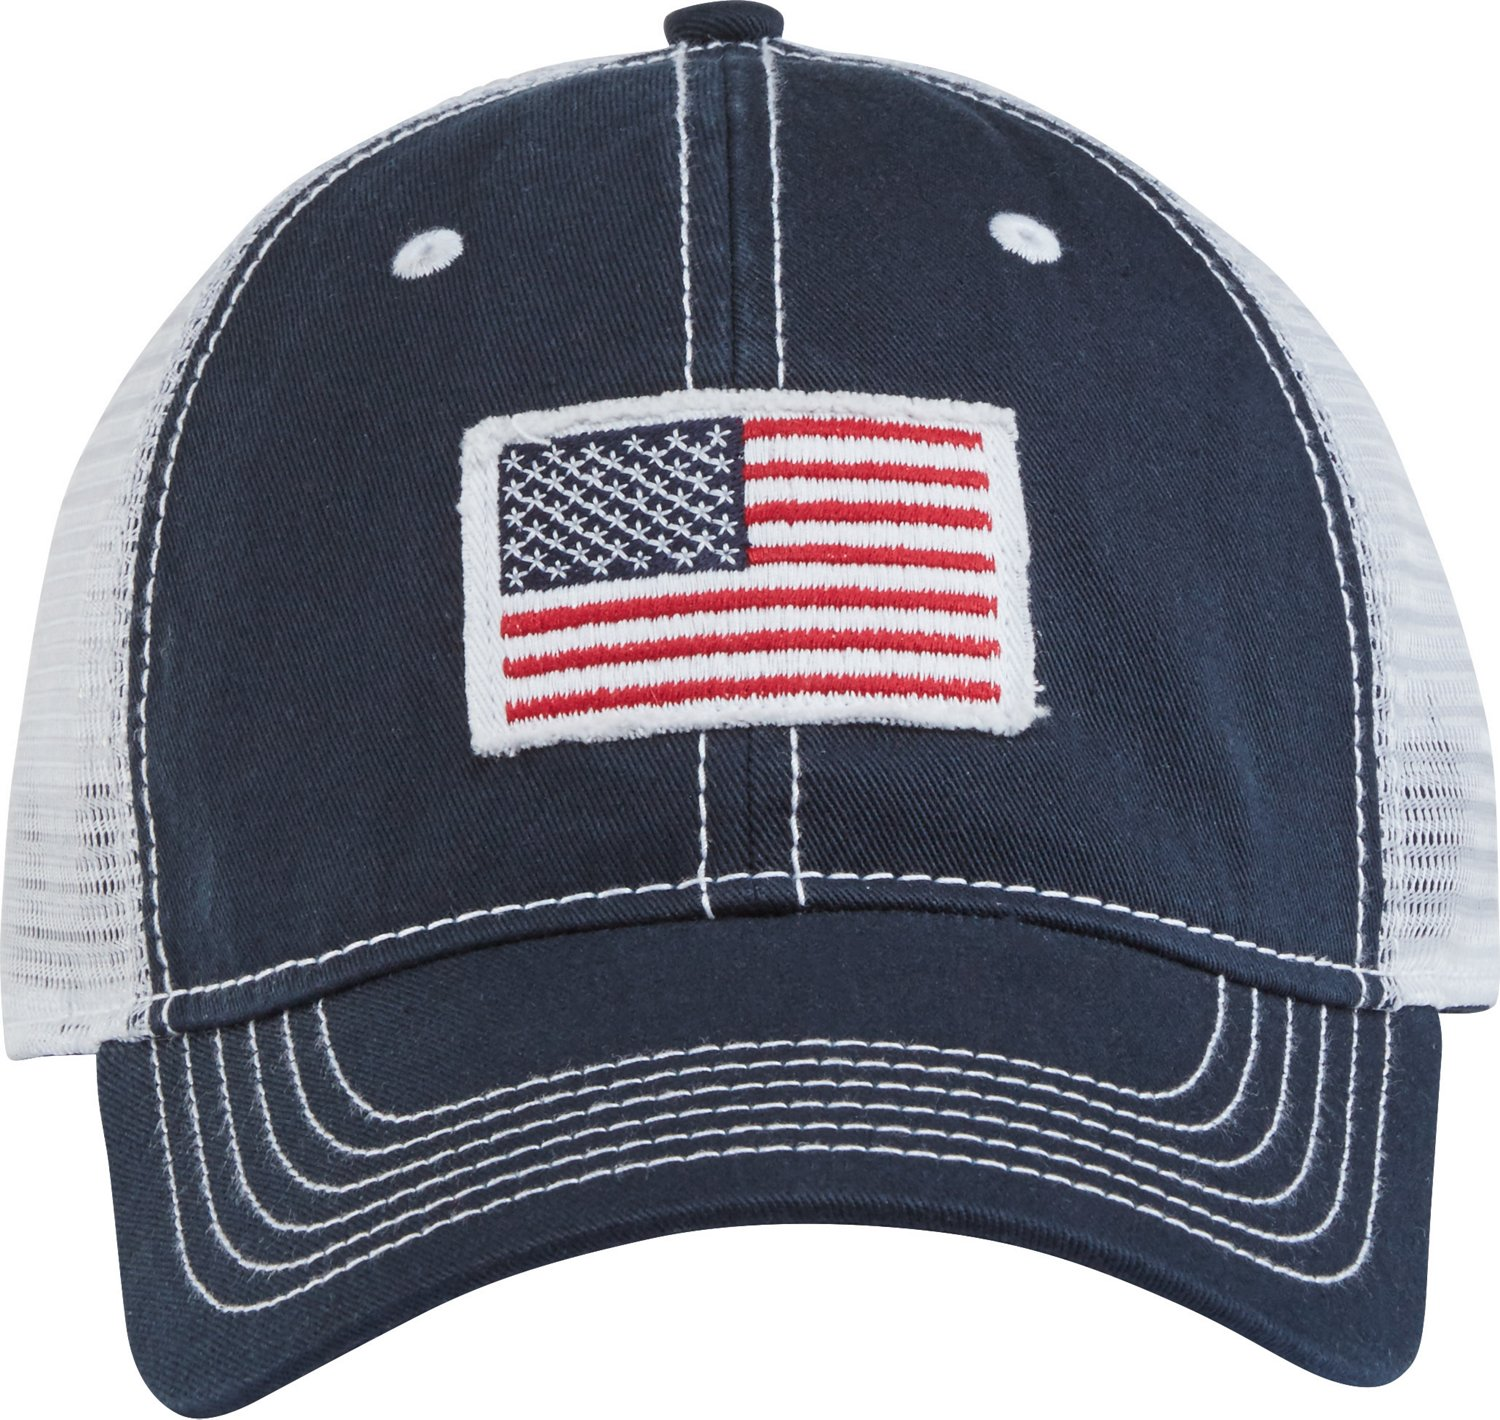 Academy Sports + Outdoors Men s American Flag Trucker Hat  d0388ad6a75